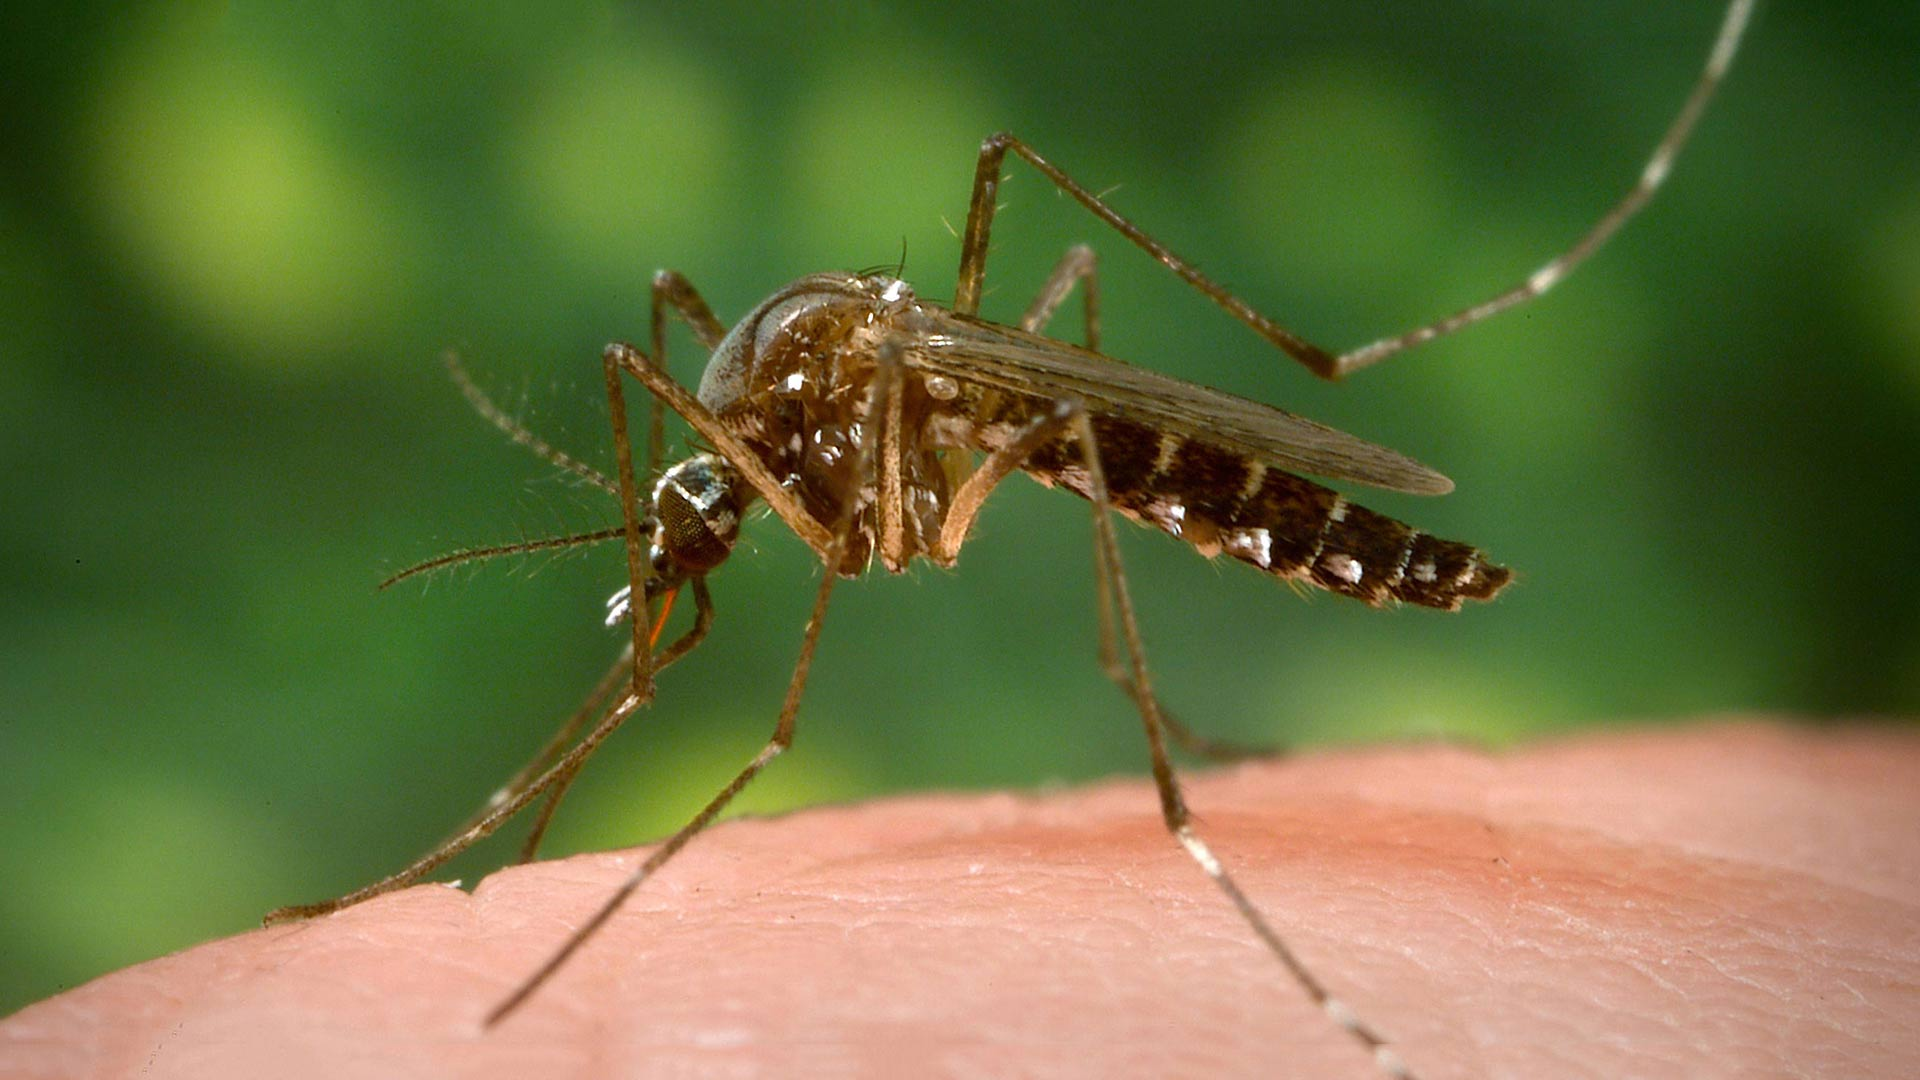 Mosquitoes are historically among the worst carriers of infectious disease globally.